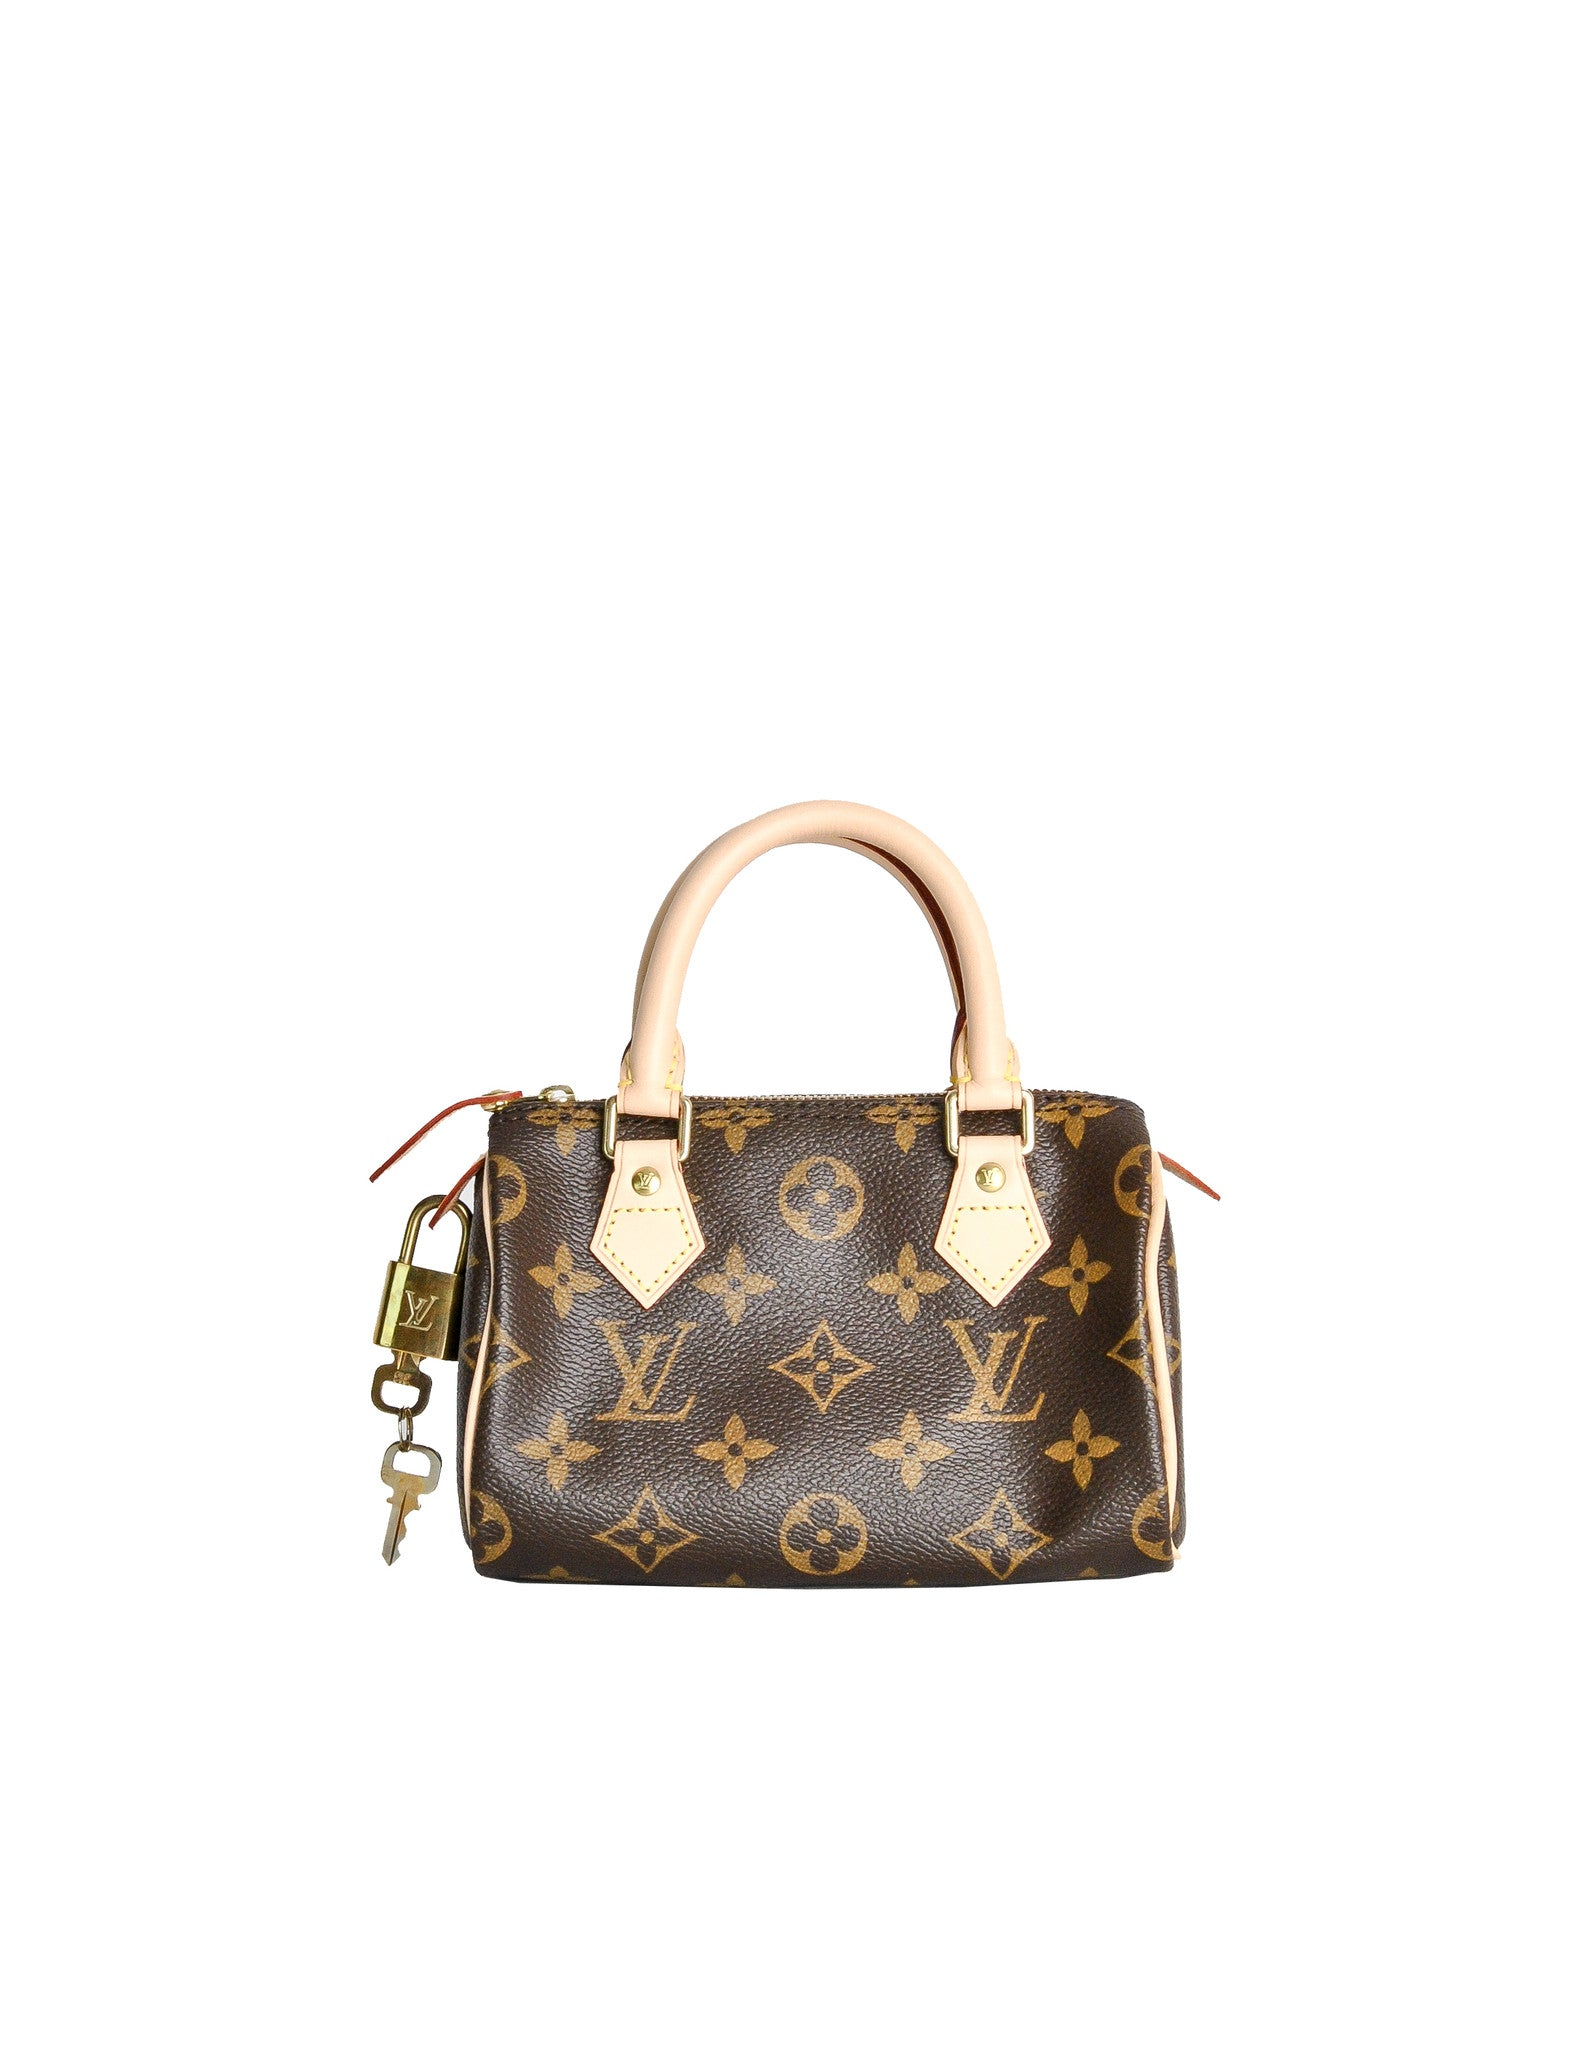 d15e51ac23776 Louis Vuitton Monogram Mini Sac Crossbody Bag - Amarcord Vintage Fashion - 1